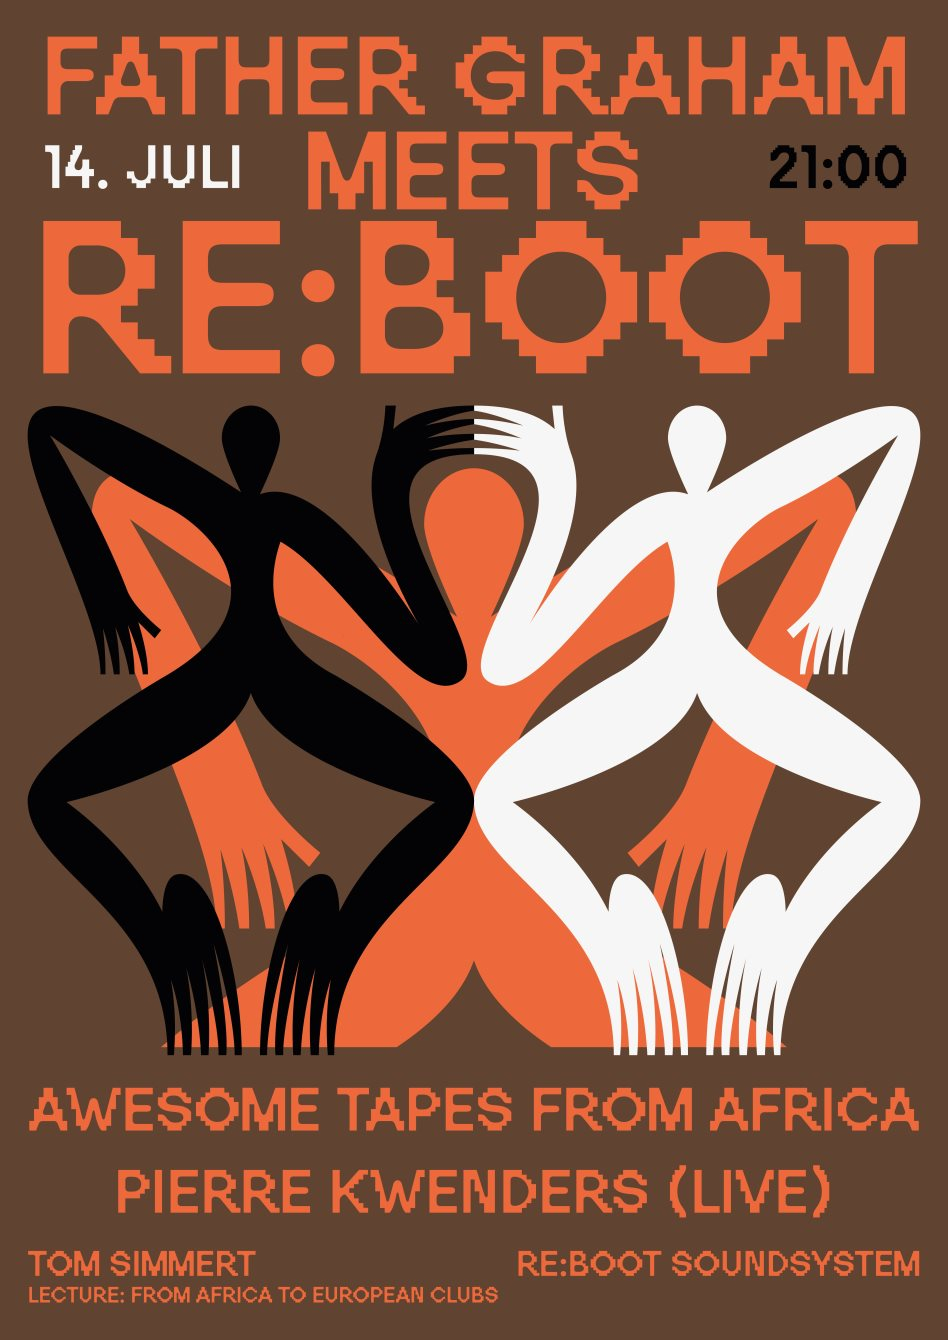 Awesome Tapes From Africa & Pierre Kwenders // FG x Re:Boot - Flyer front